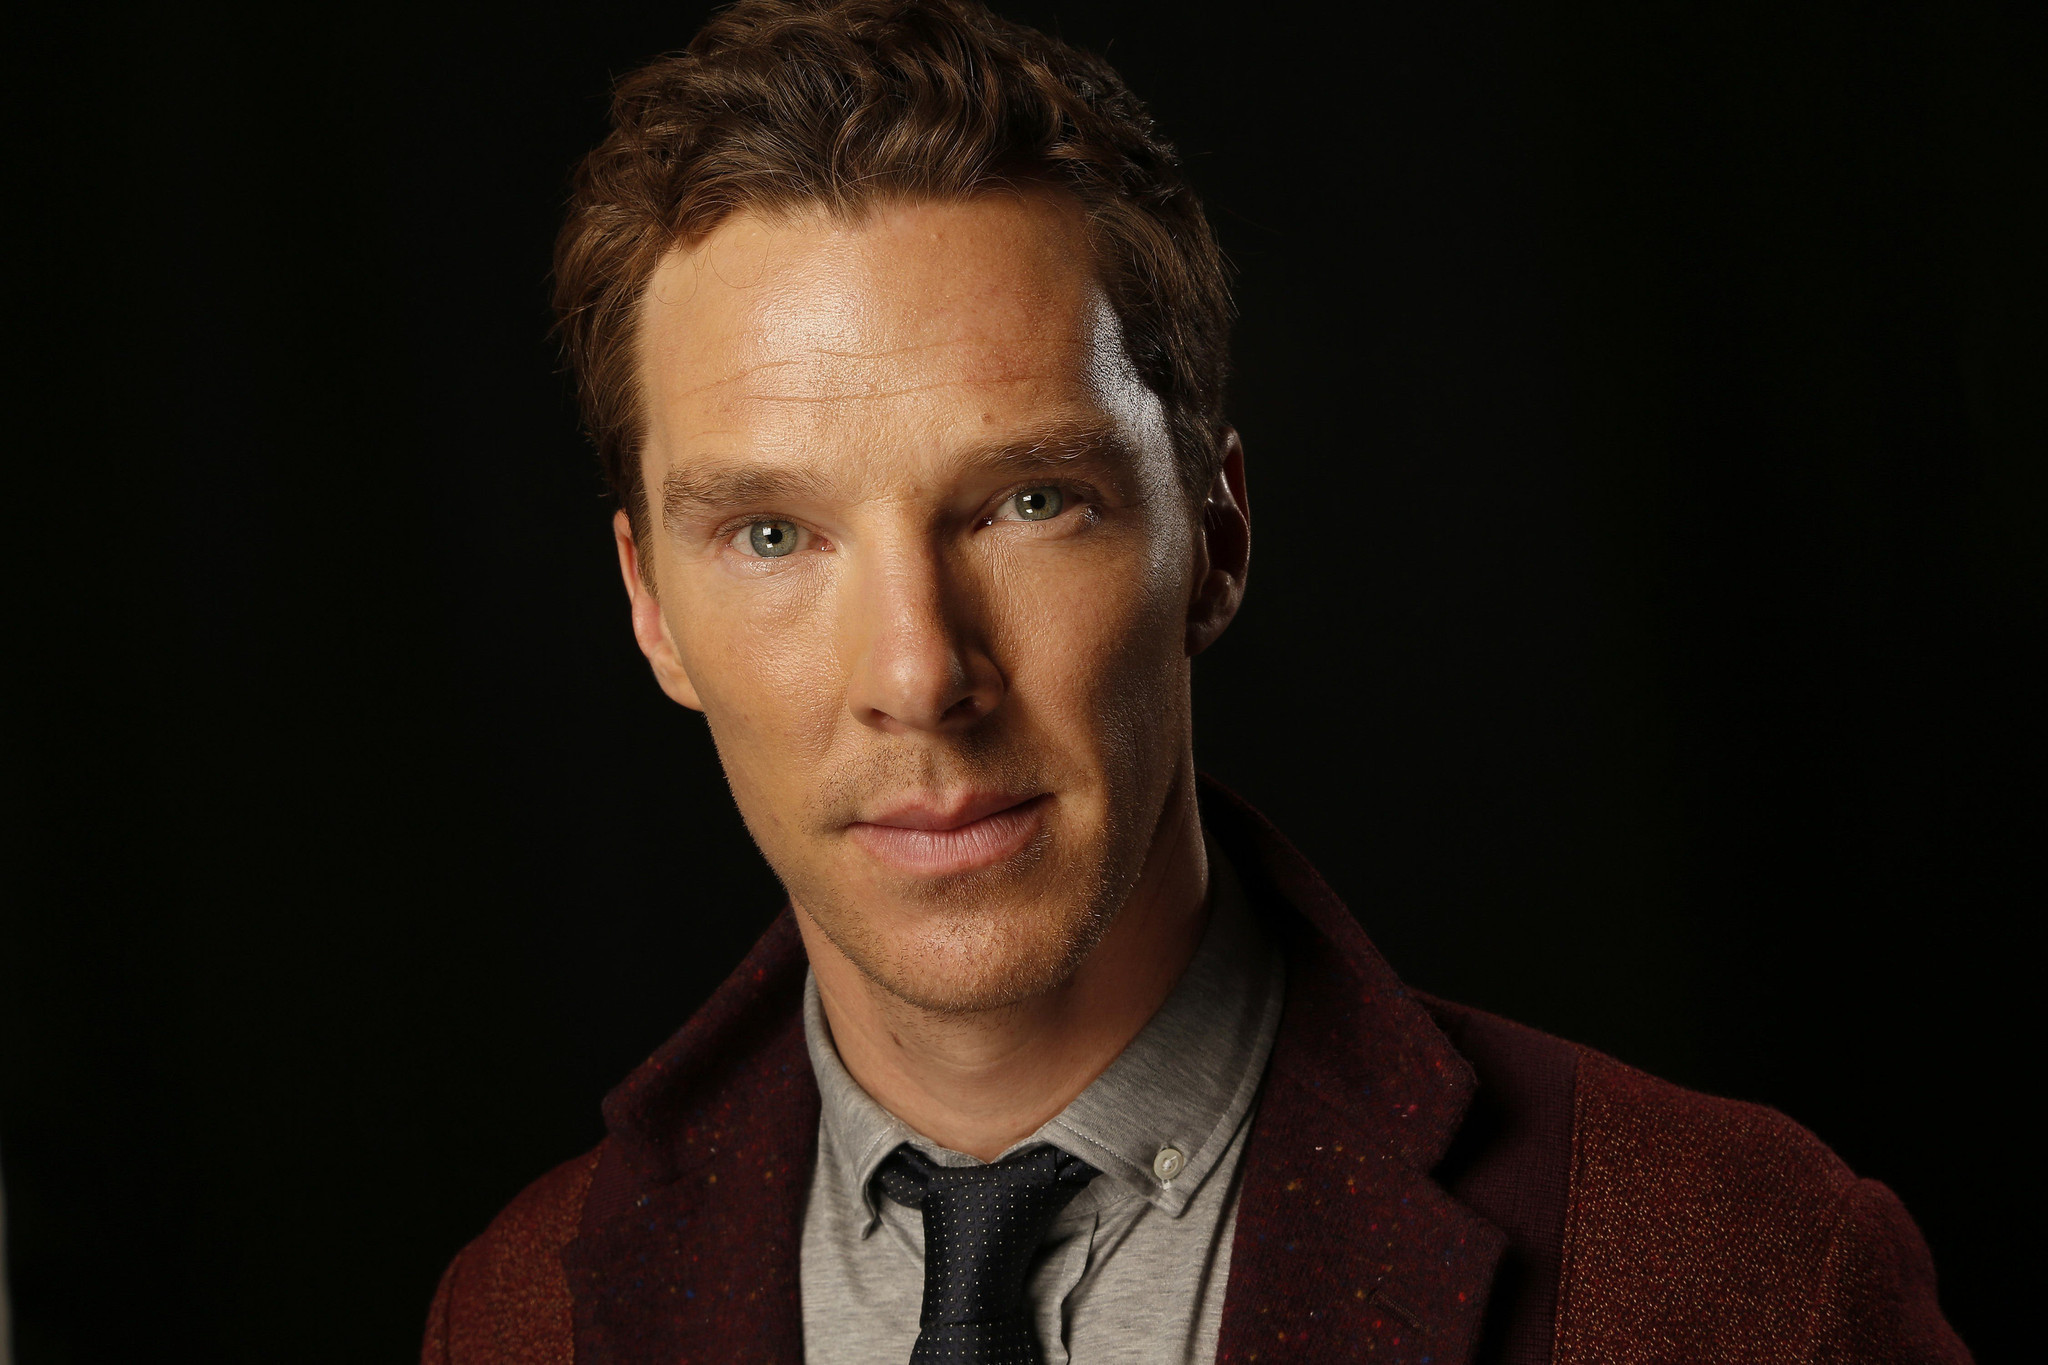 benedict cumberbatch - photo #43